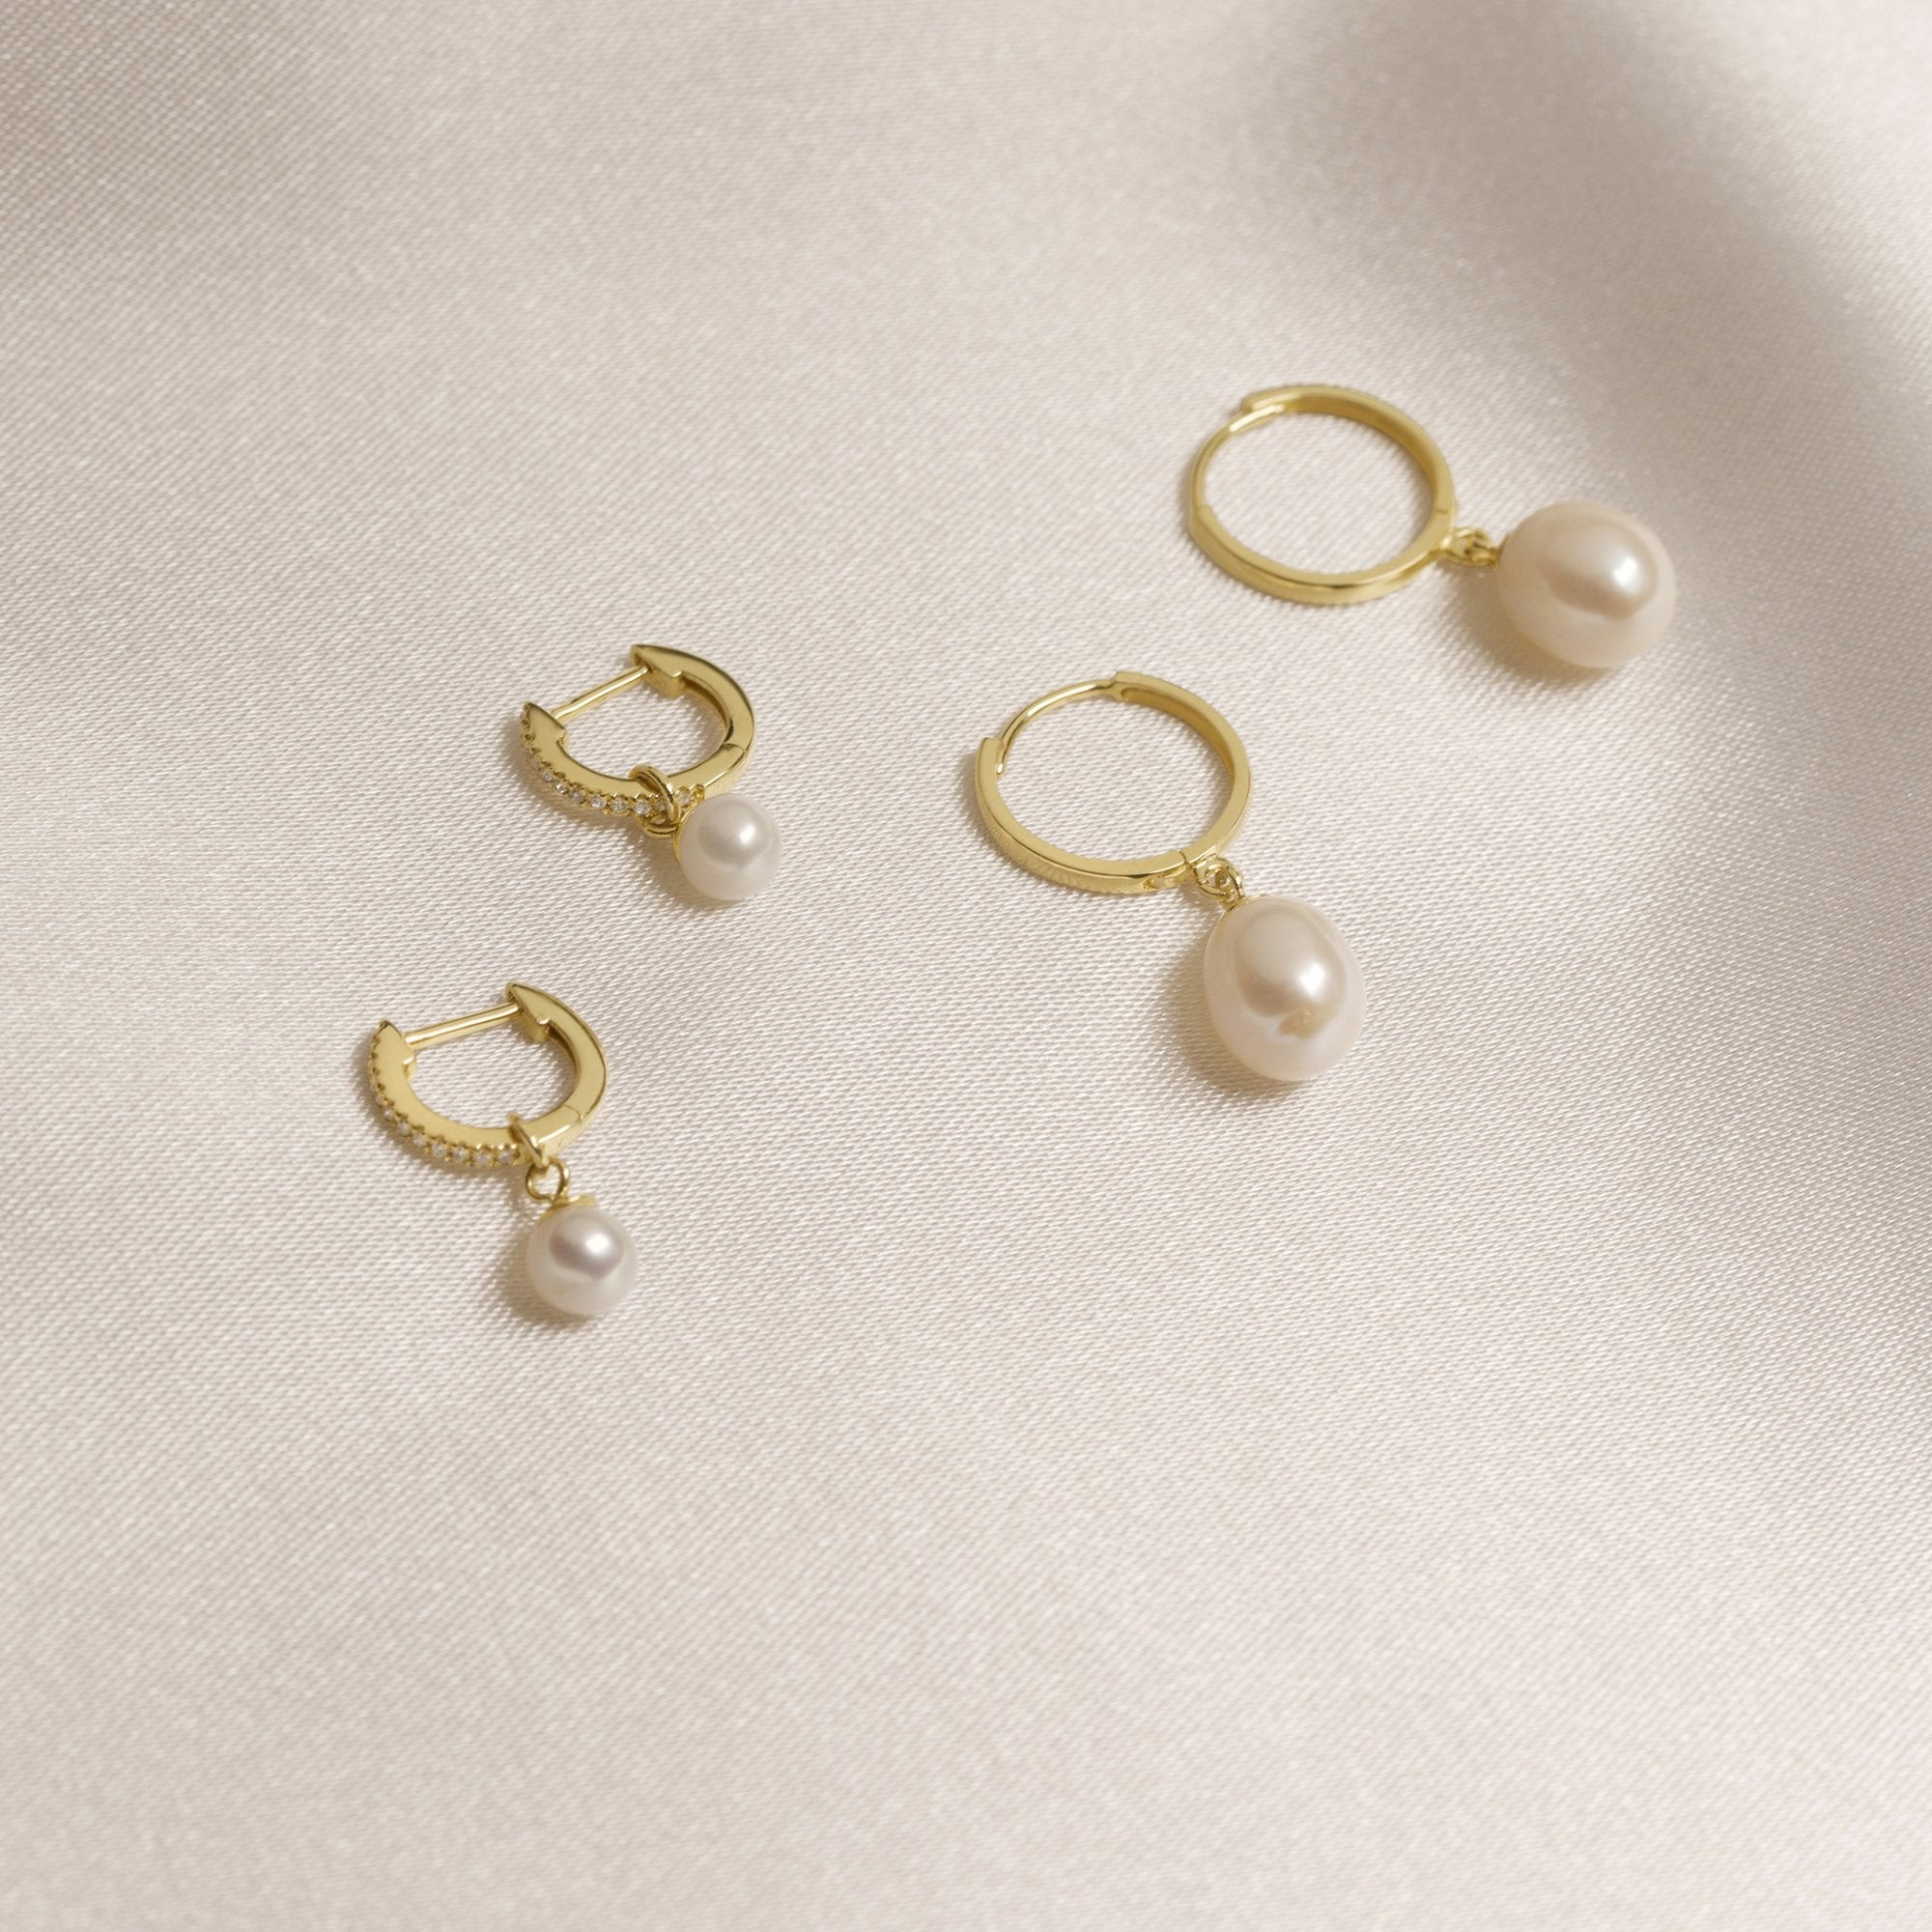 Freshwater Droplet Pearl Pave Huggies- Left